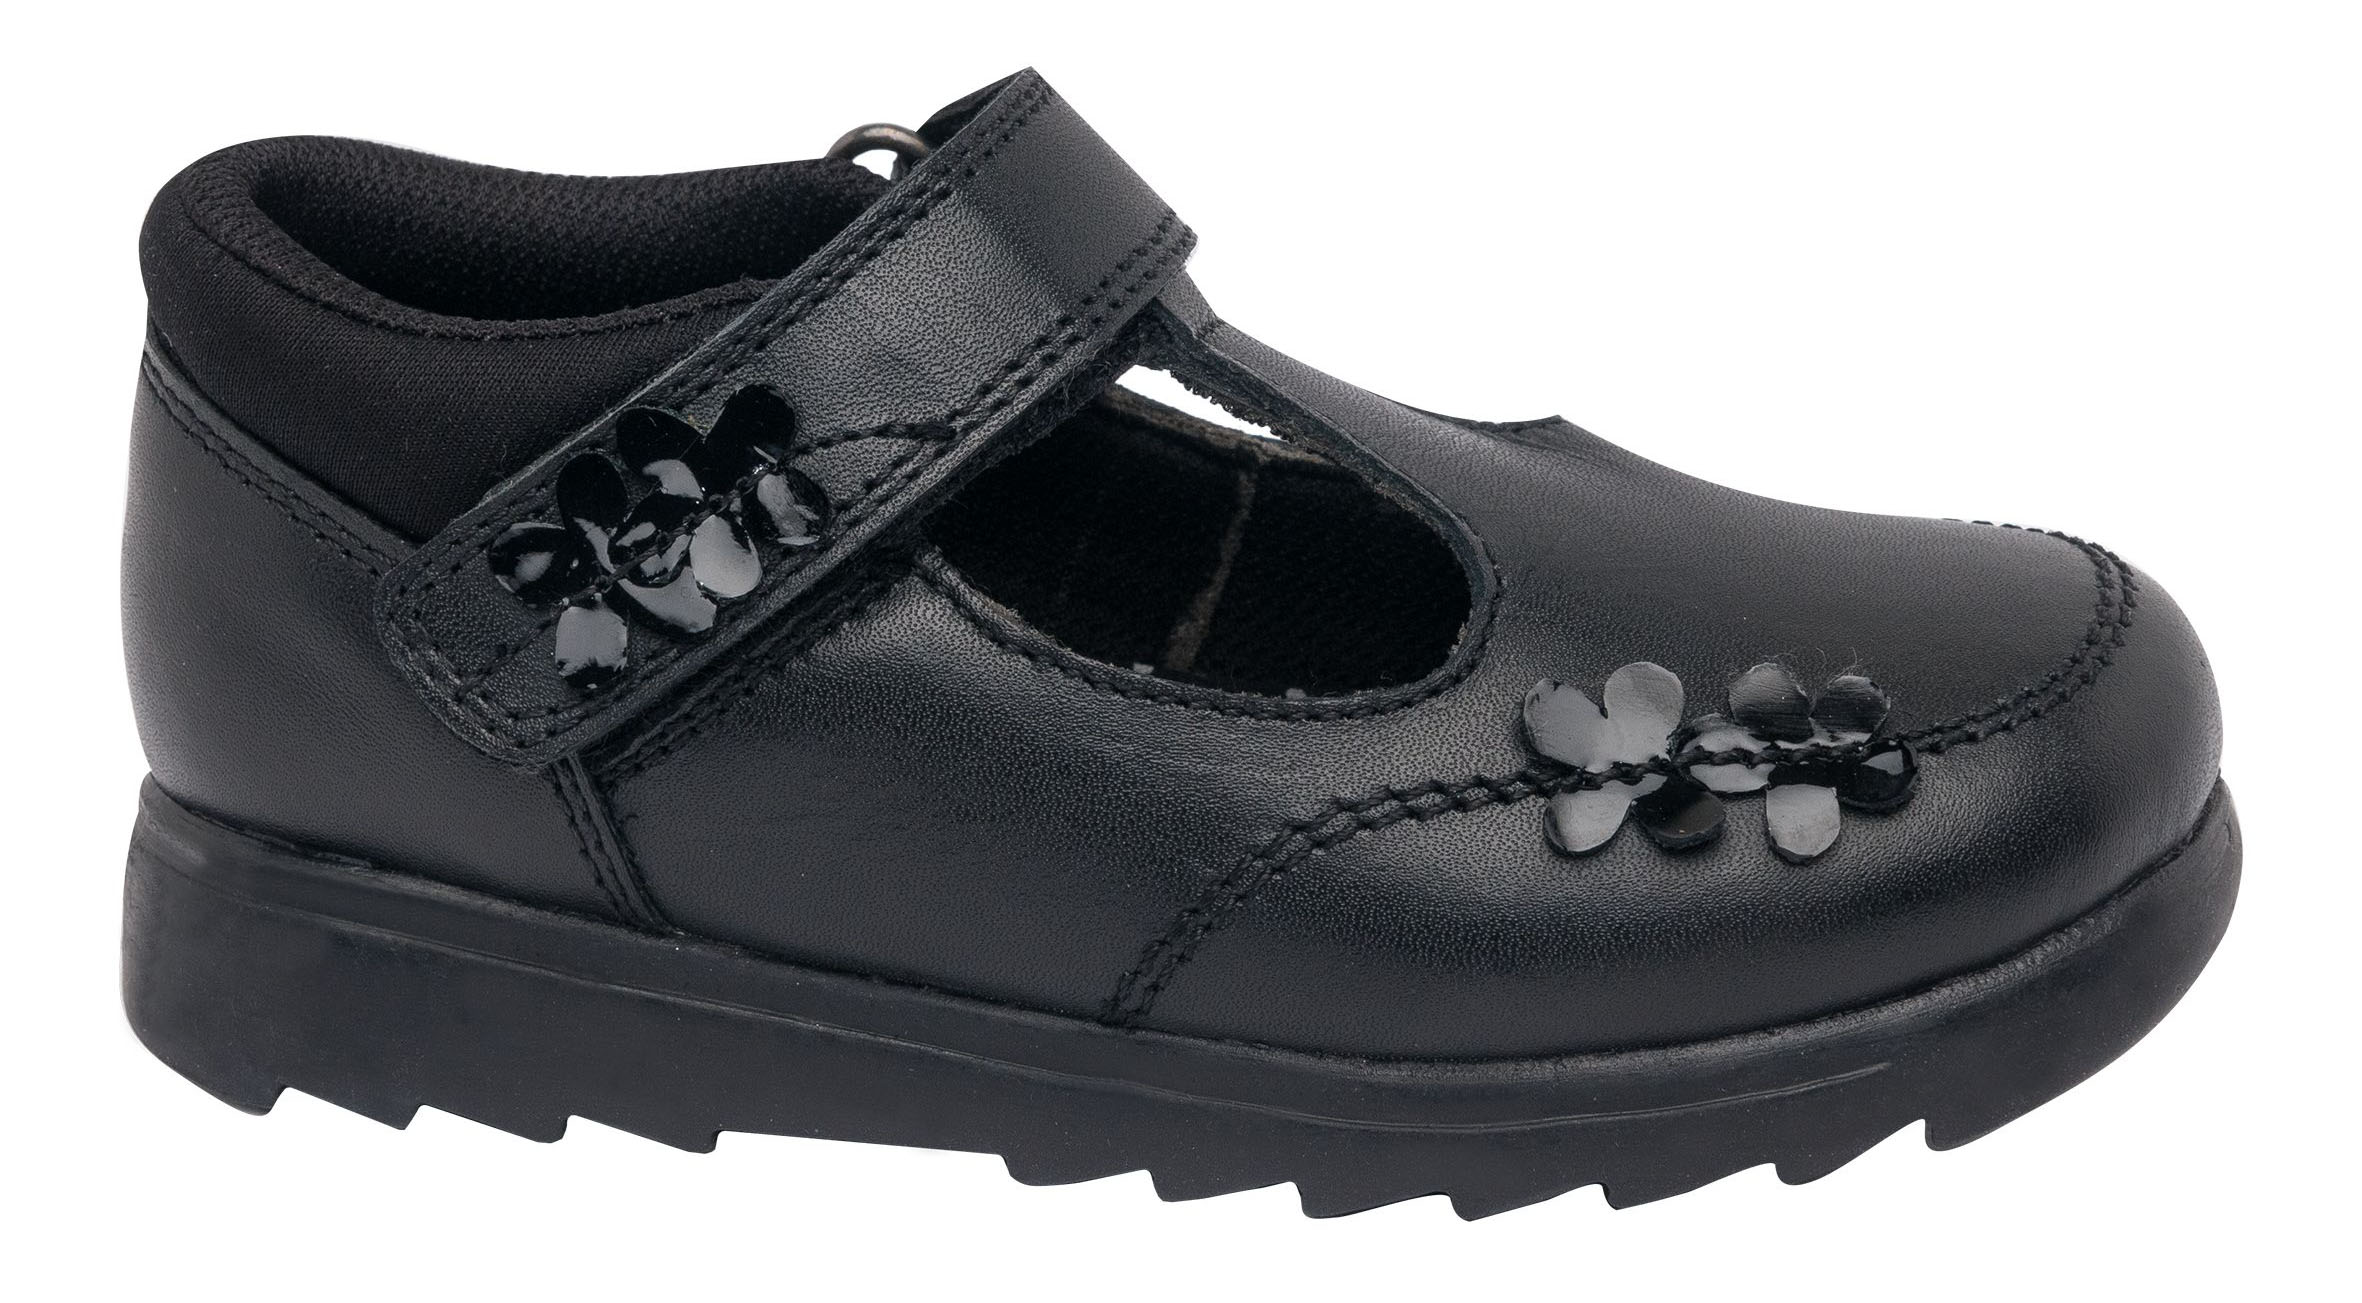 Girl Leather T-bar School Shoes, £17.99 - available on buy one get one half price offer, Deichmann